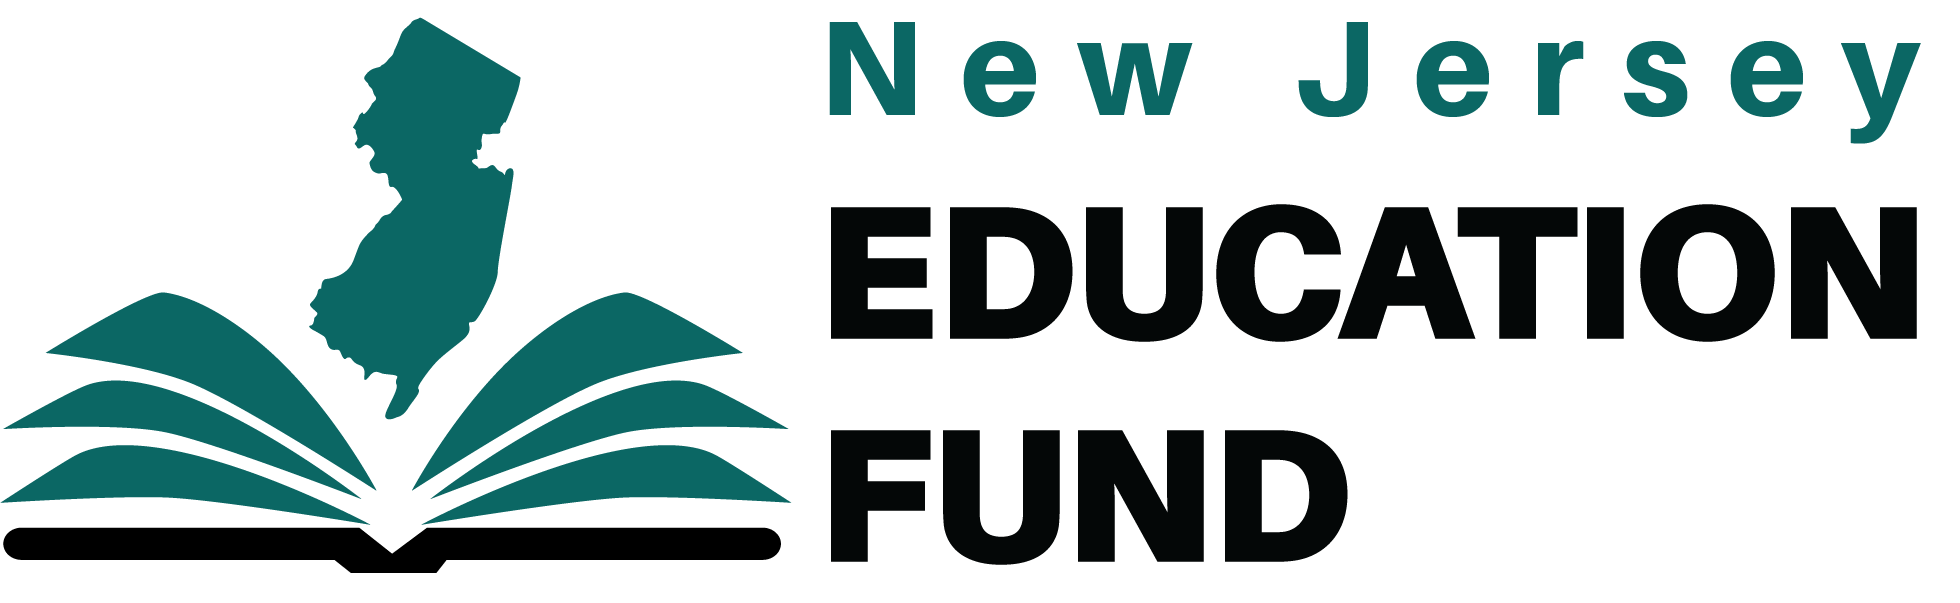 NJ education fund logo (horizontal)